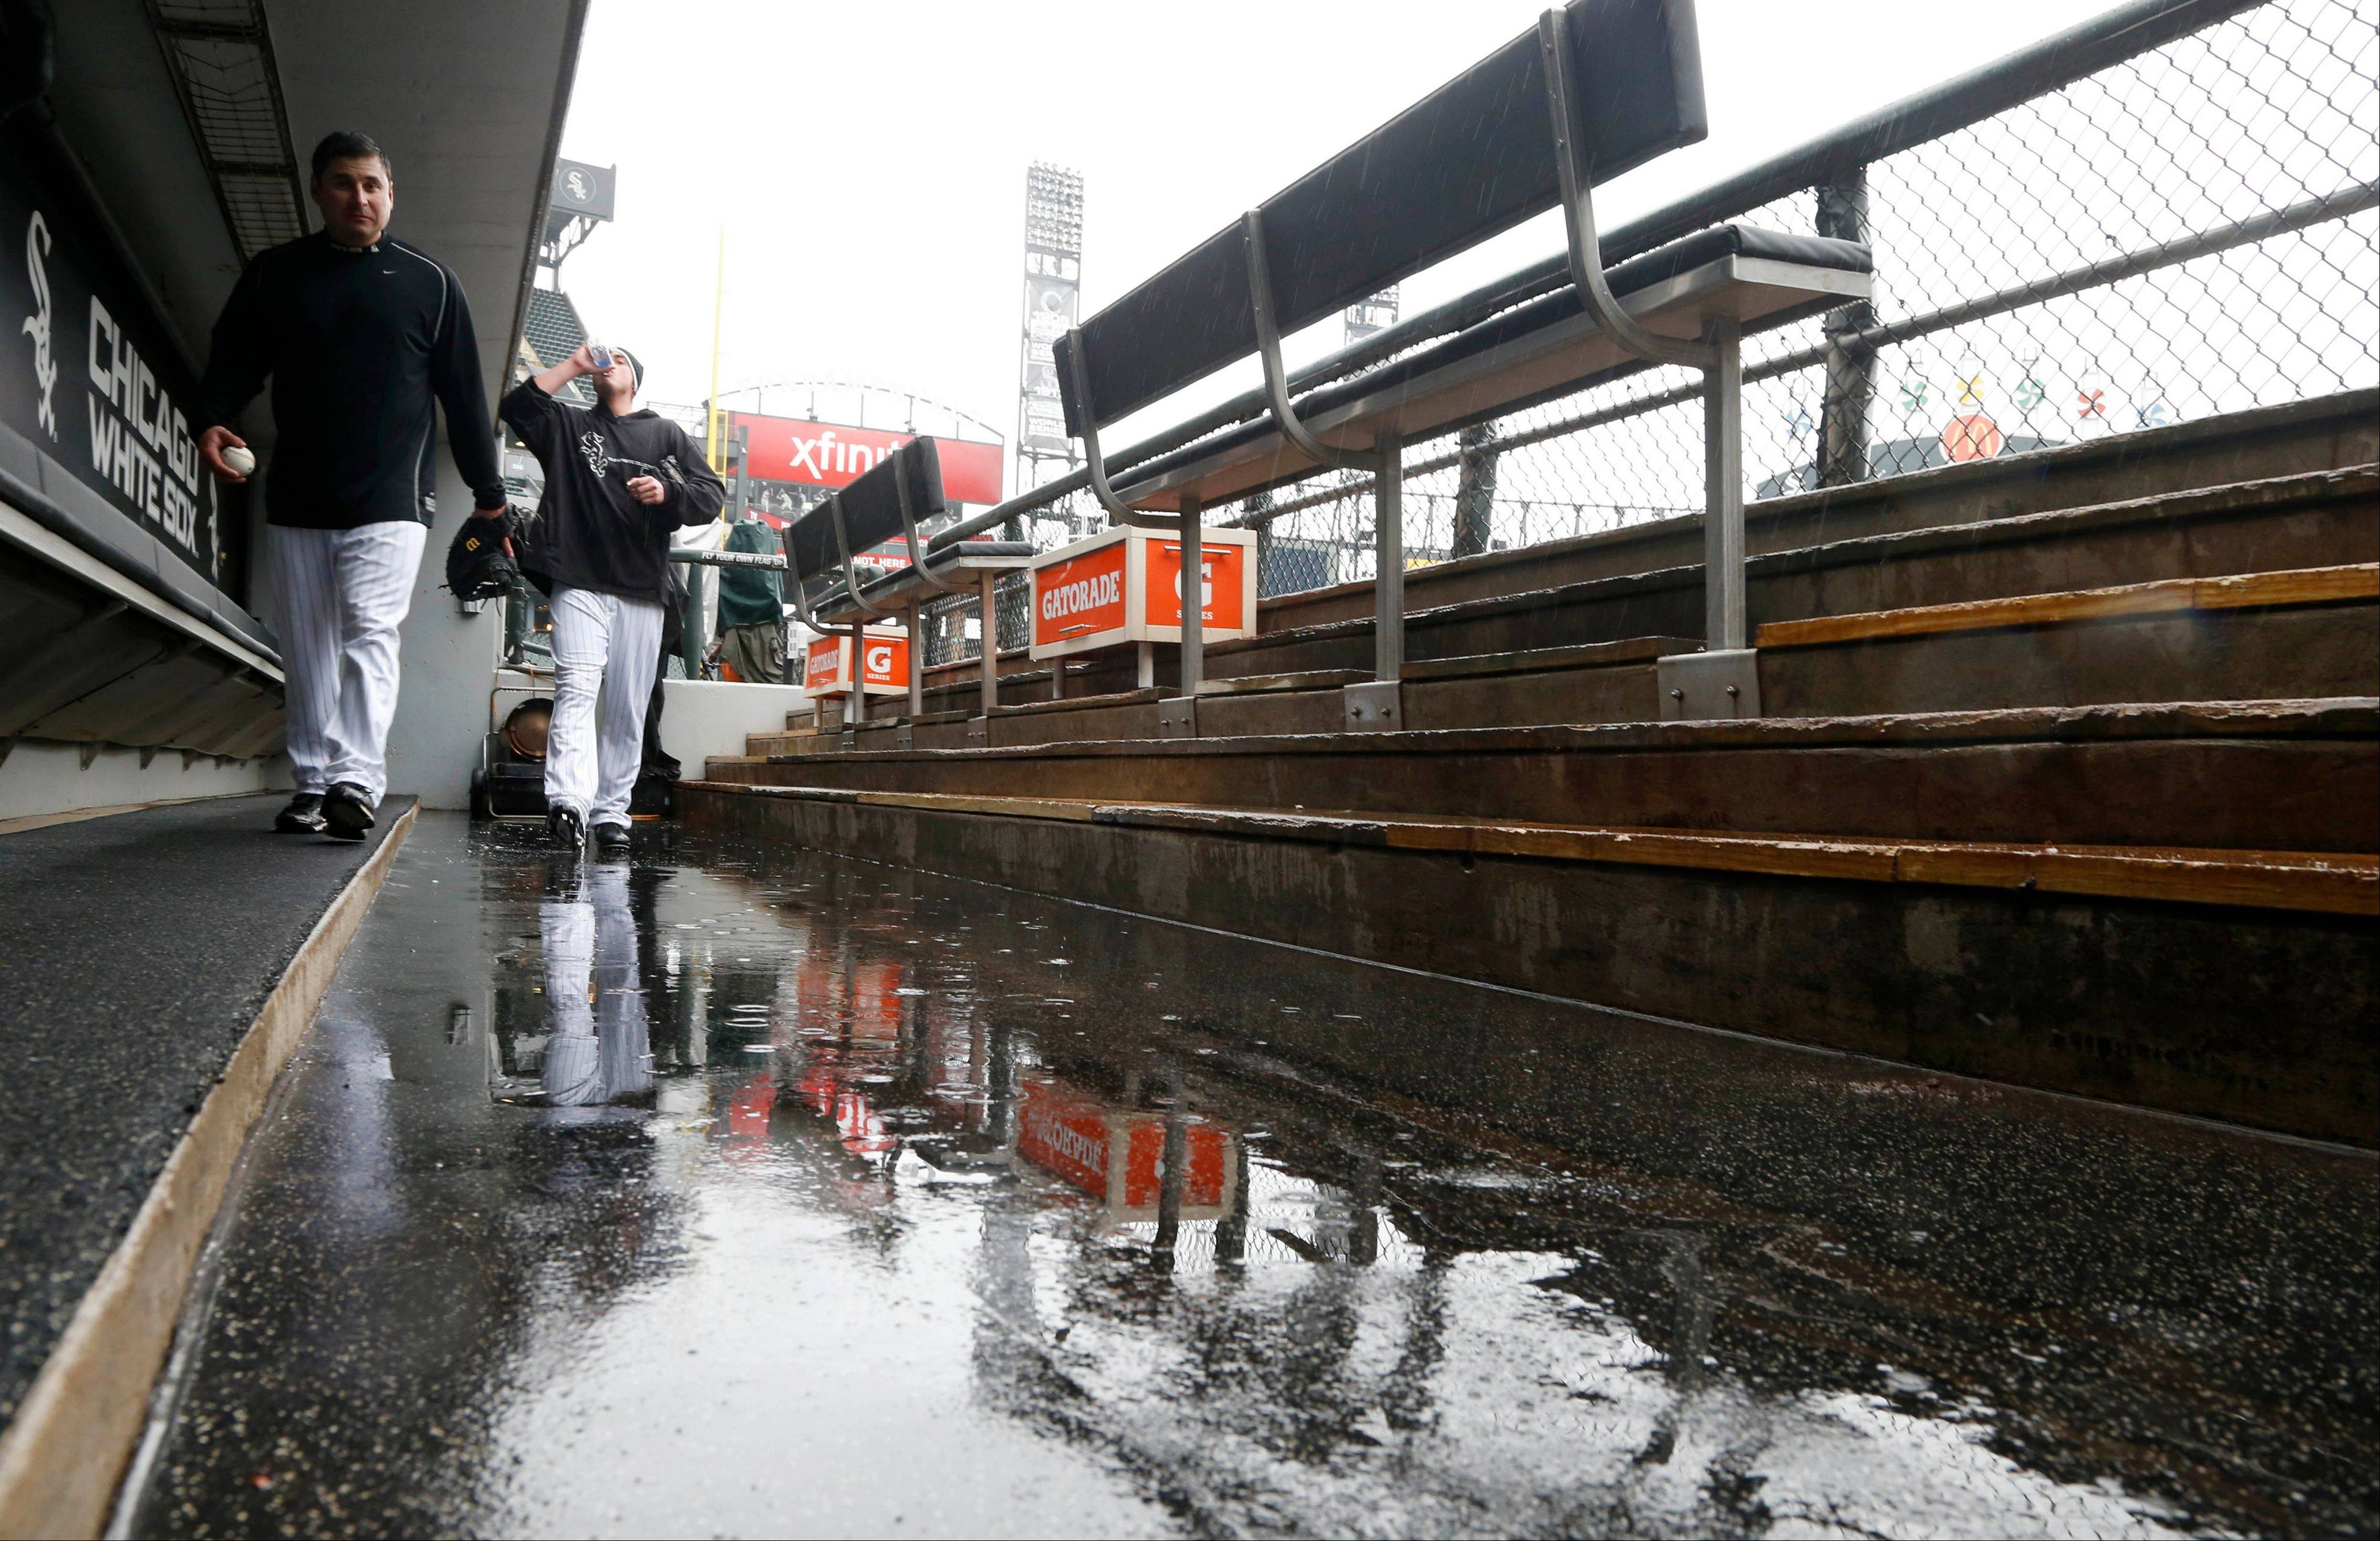 Chicago White Sox's bullpen coach Bobby Thigpen, left, and relief pitcher Addison Reed walk in and around the standing water in the dugout before a postponed baseball game that was called due to rain between the White Sox and the Cleveland Indians Tuesday, April 23, 2013, in Chicago.